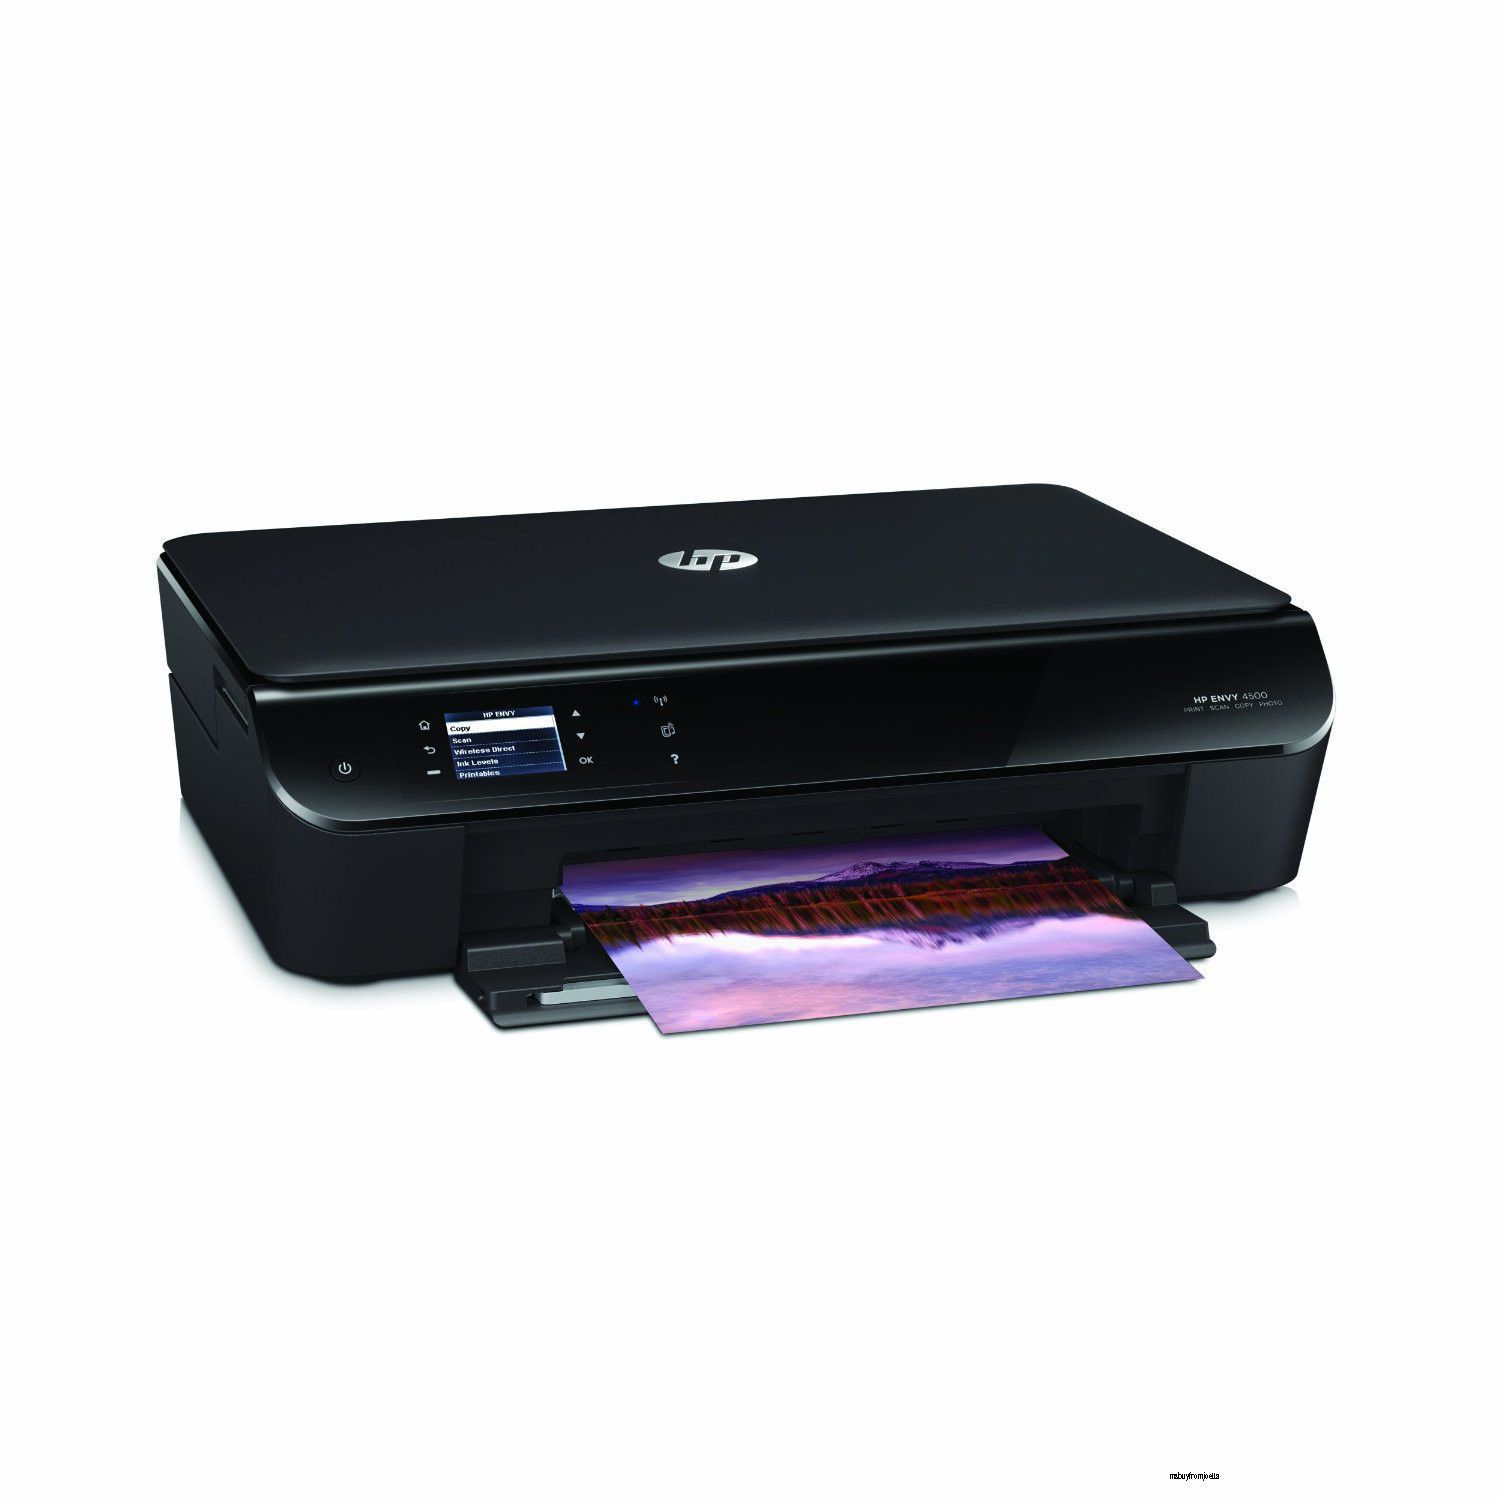 64fab1c48168f2478c4a6bfa064135a8 - How Do I Get My Hp 4500 Printer To Scan